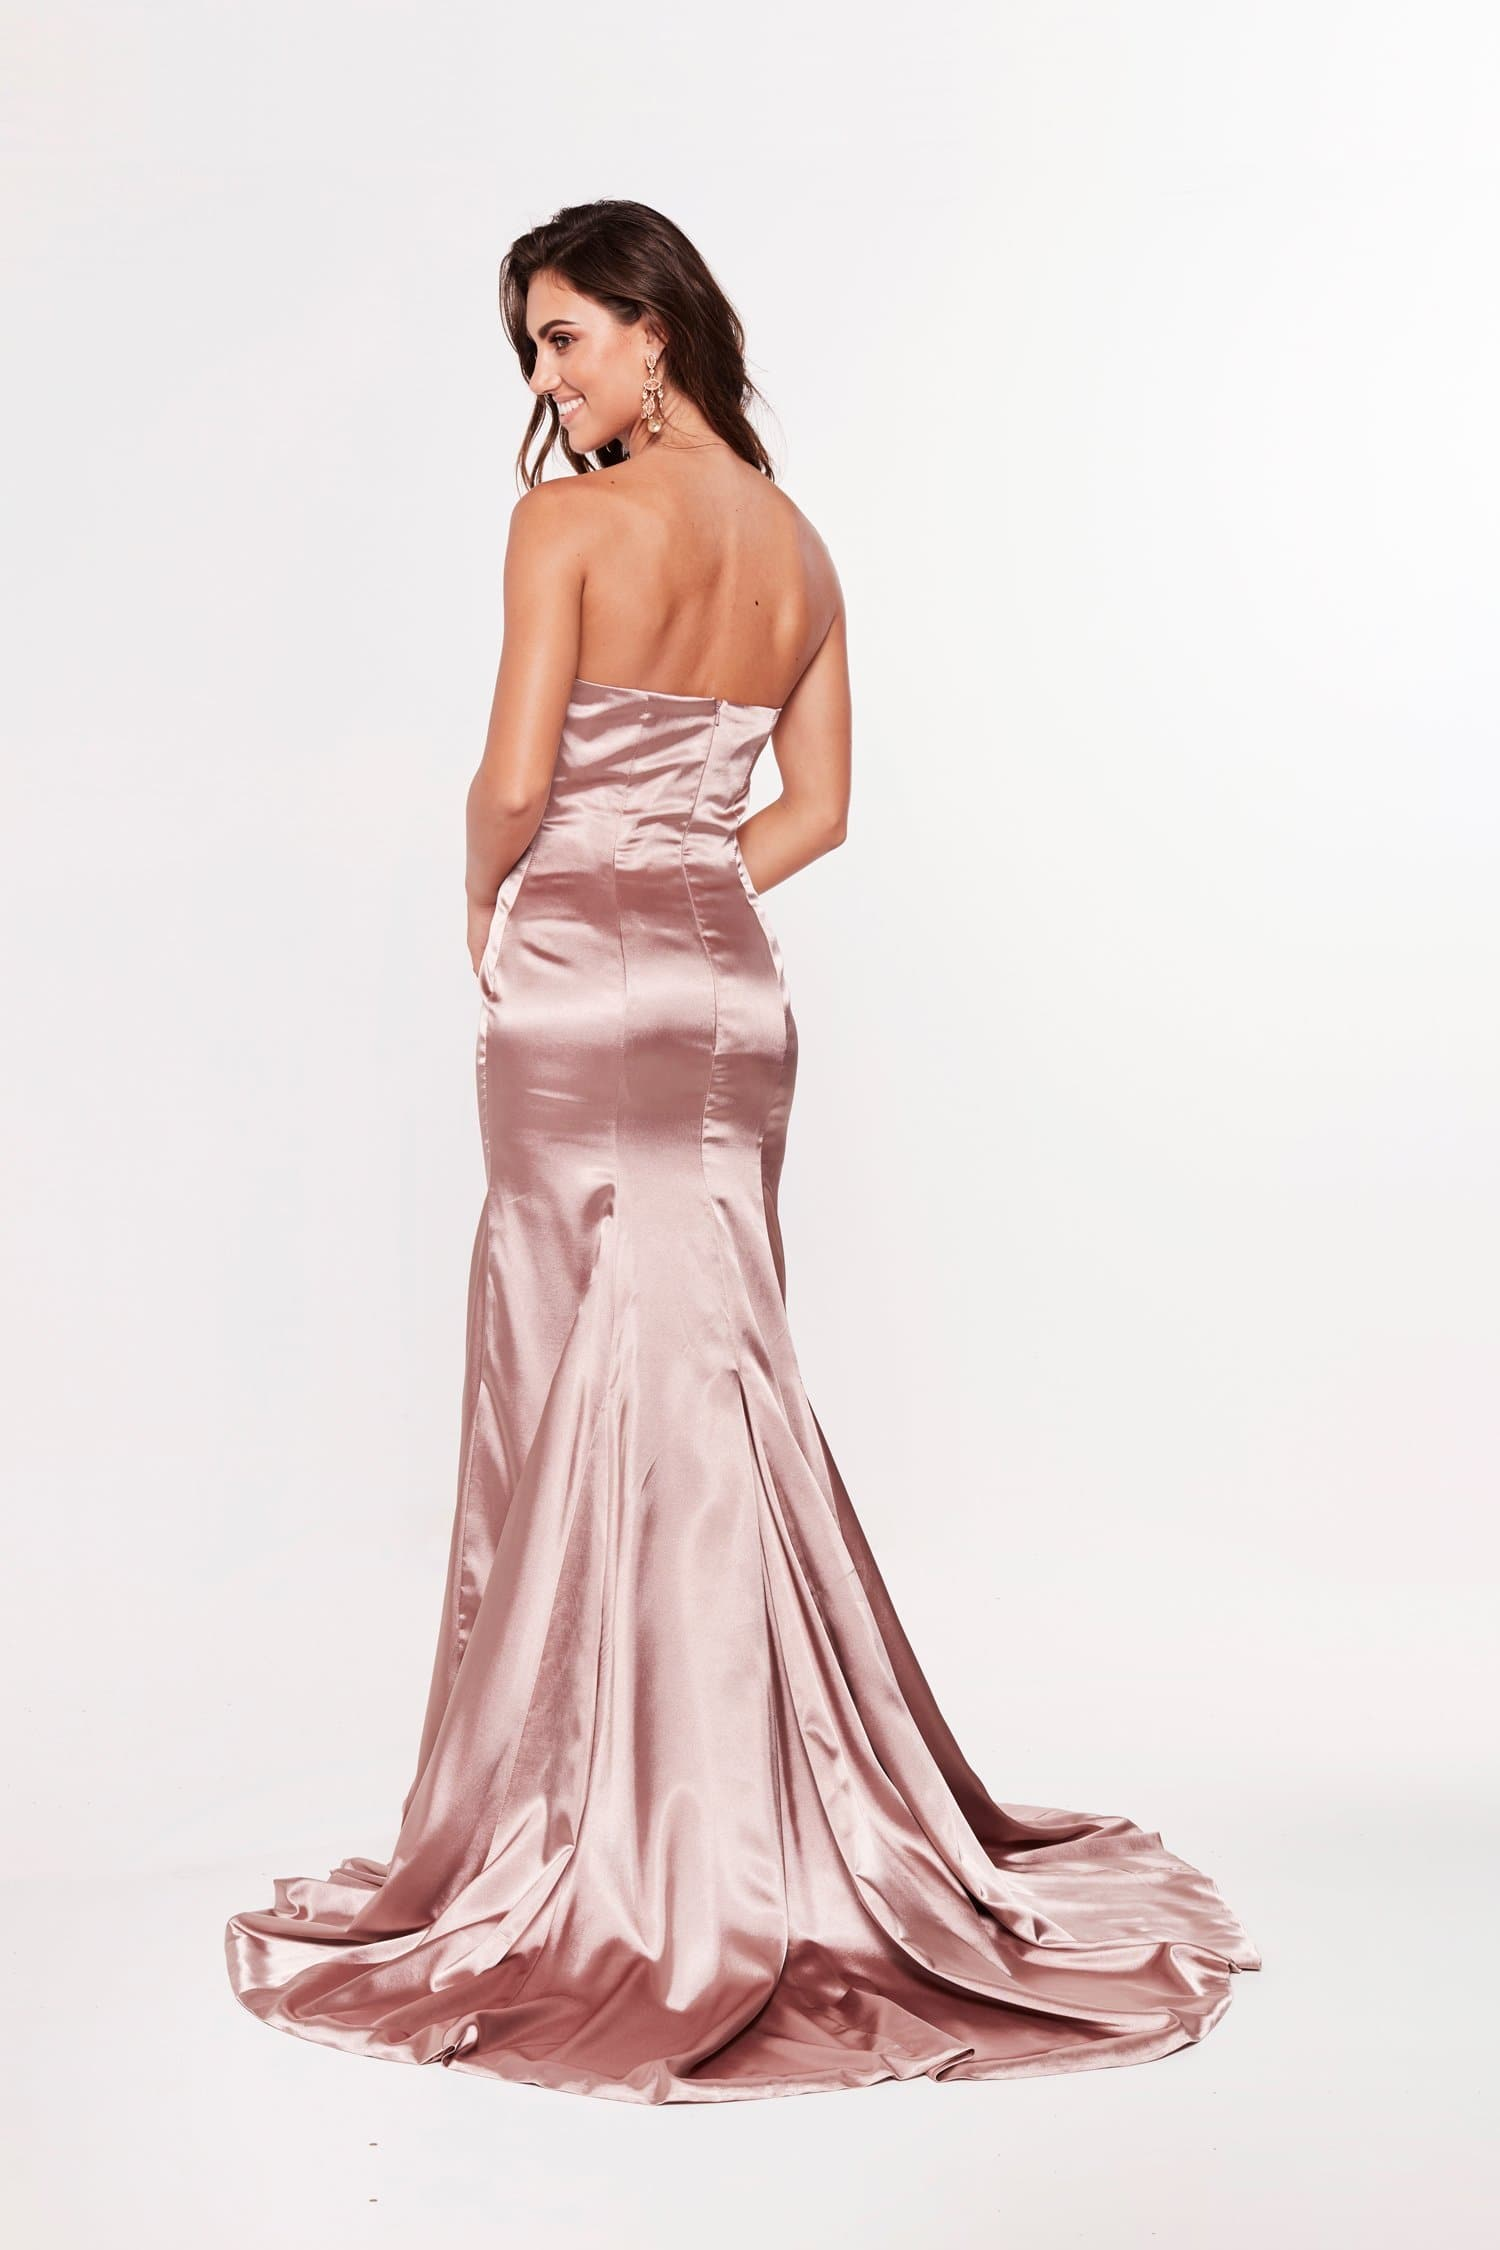 A&N Luxe Aino Strapless Satin Gown - Mauve